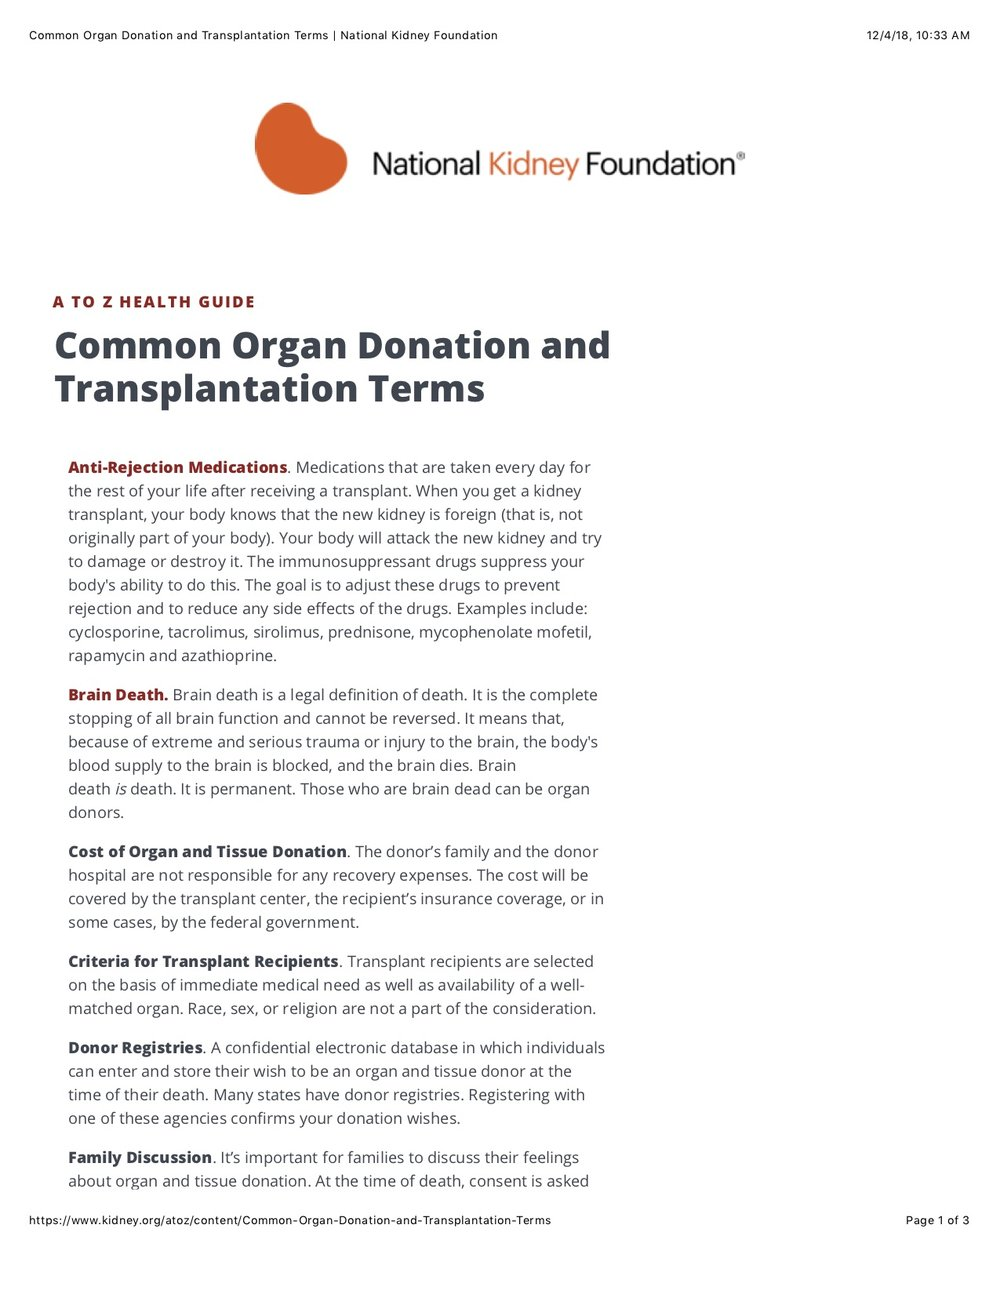 Common Organ Donation and Transplant Terms -